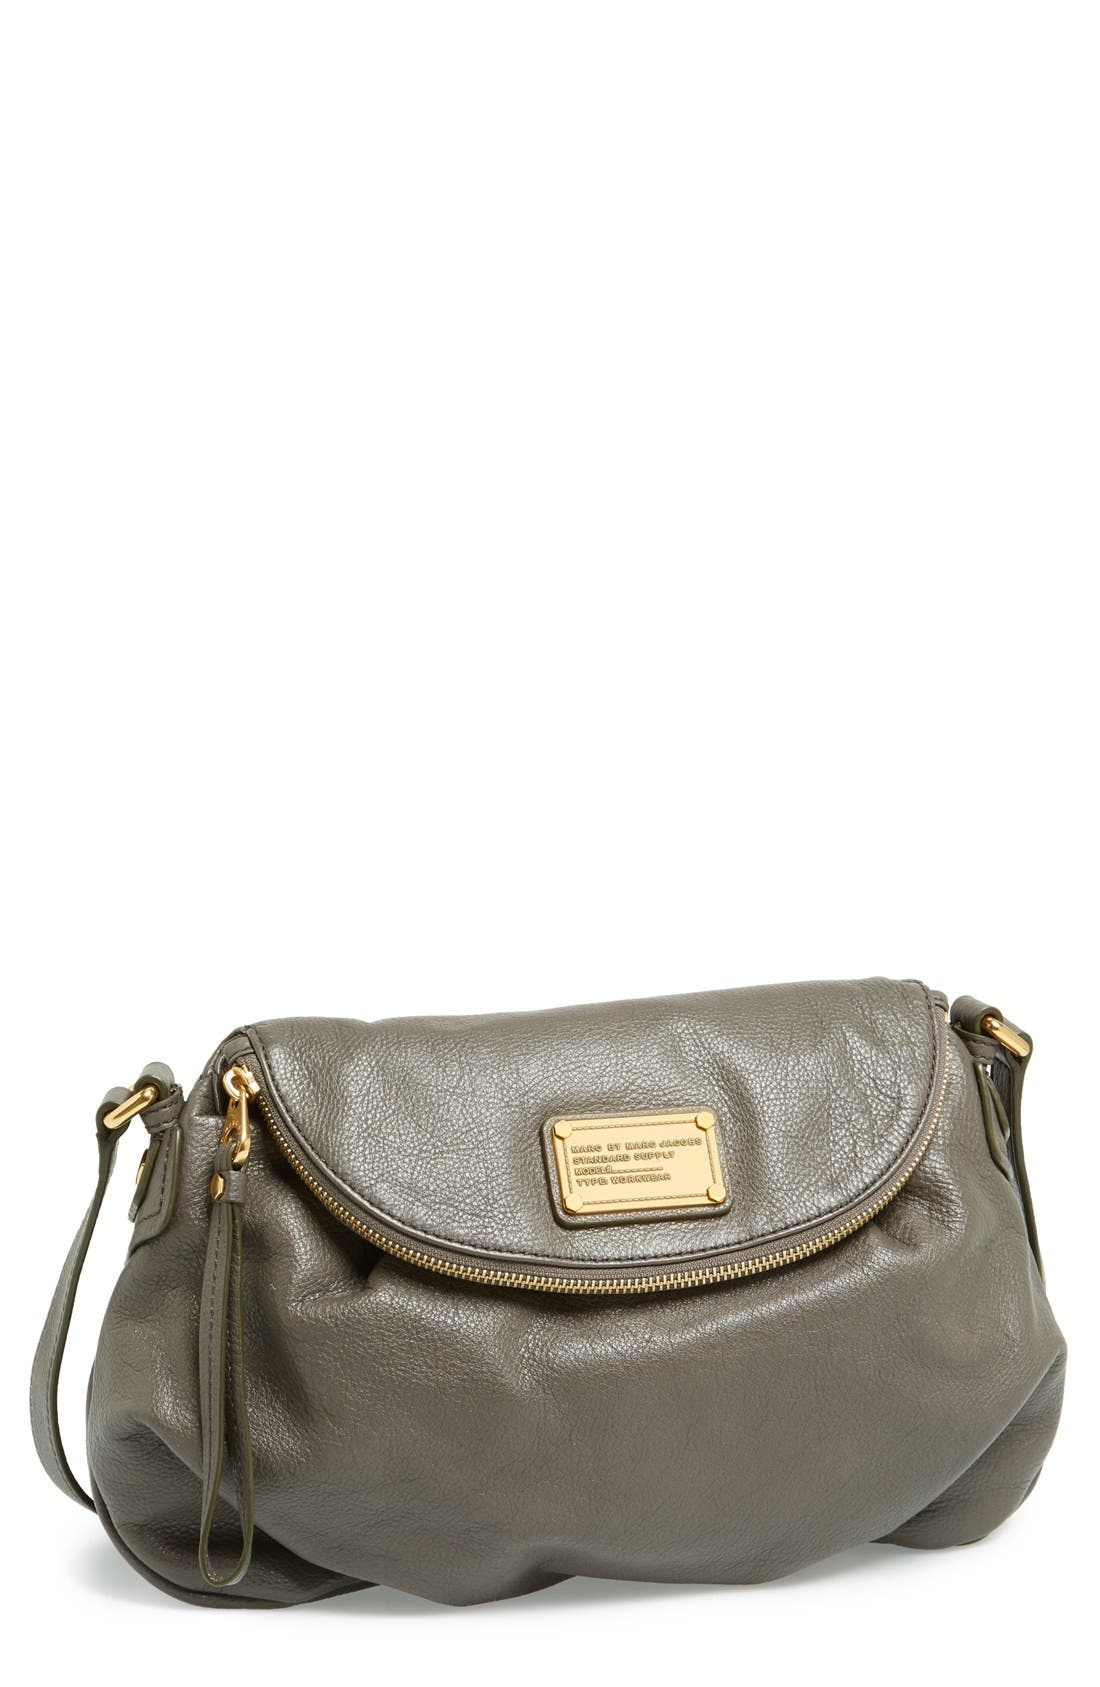 MARC BY MARC JACOBS 'Classic Q - Natasha' Crossbody Bag,                             Main thumbnail 3, color,